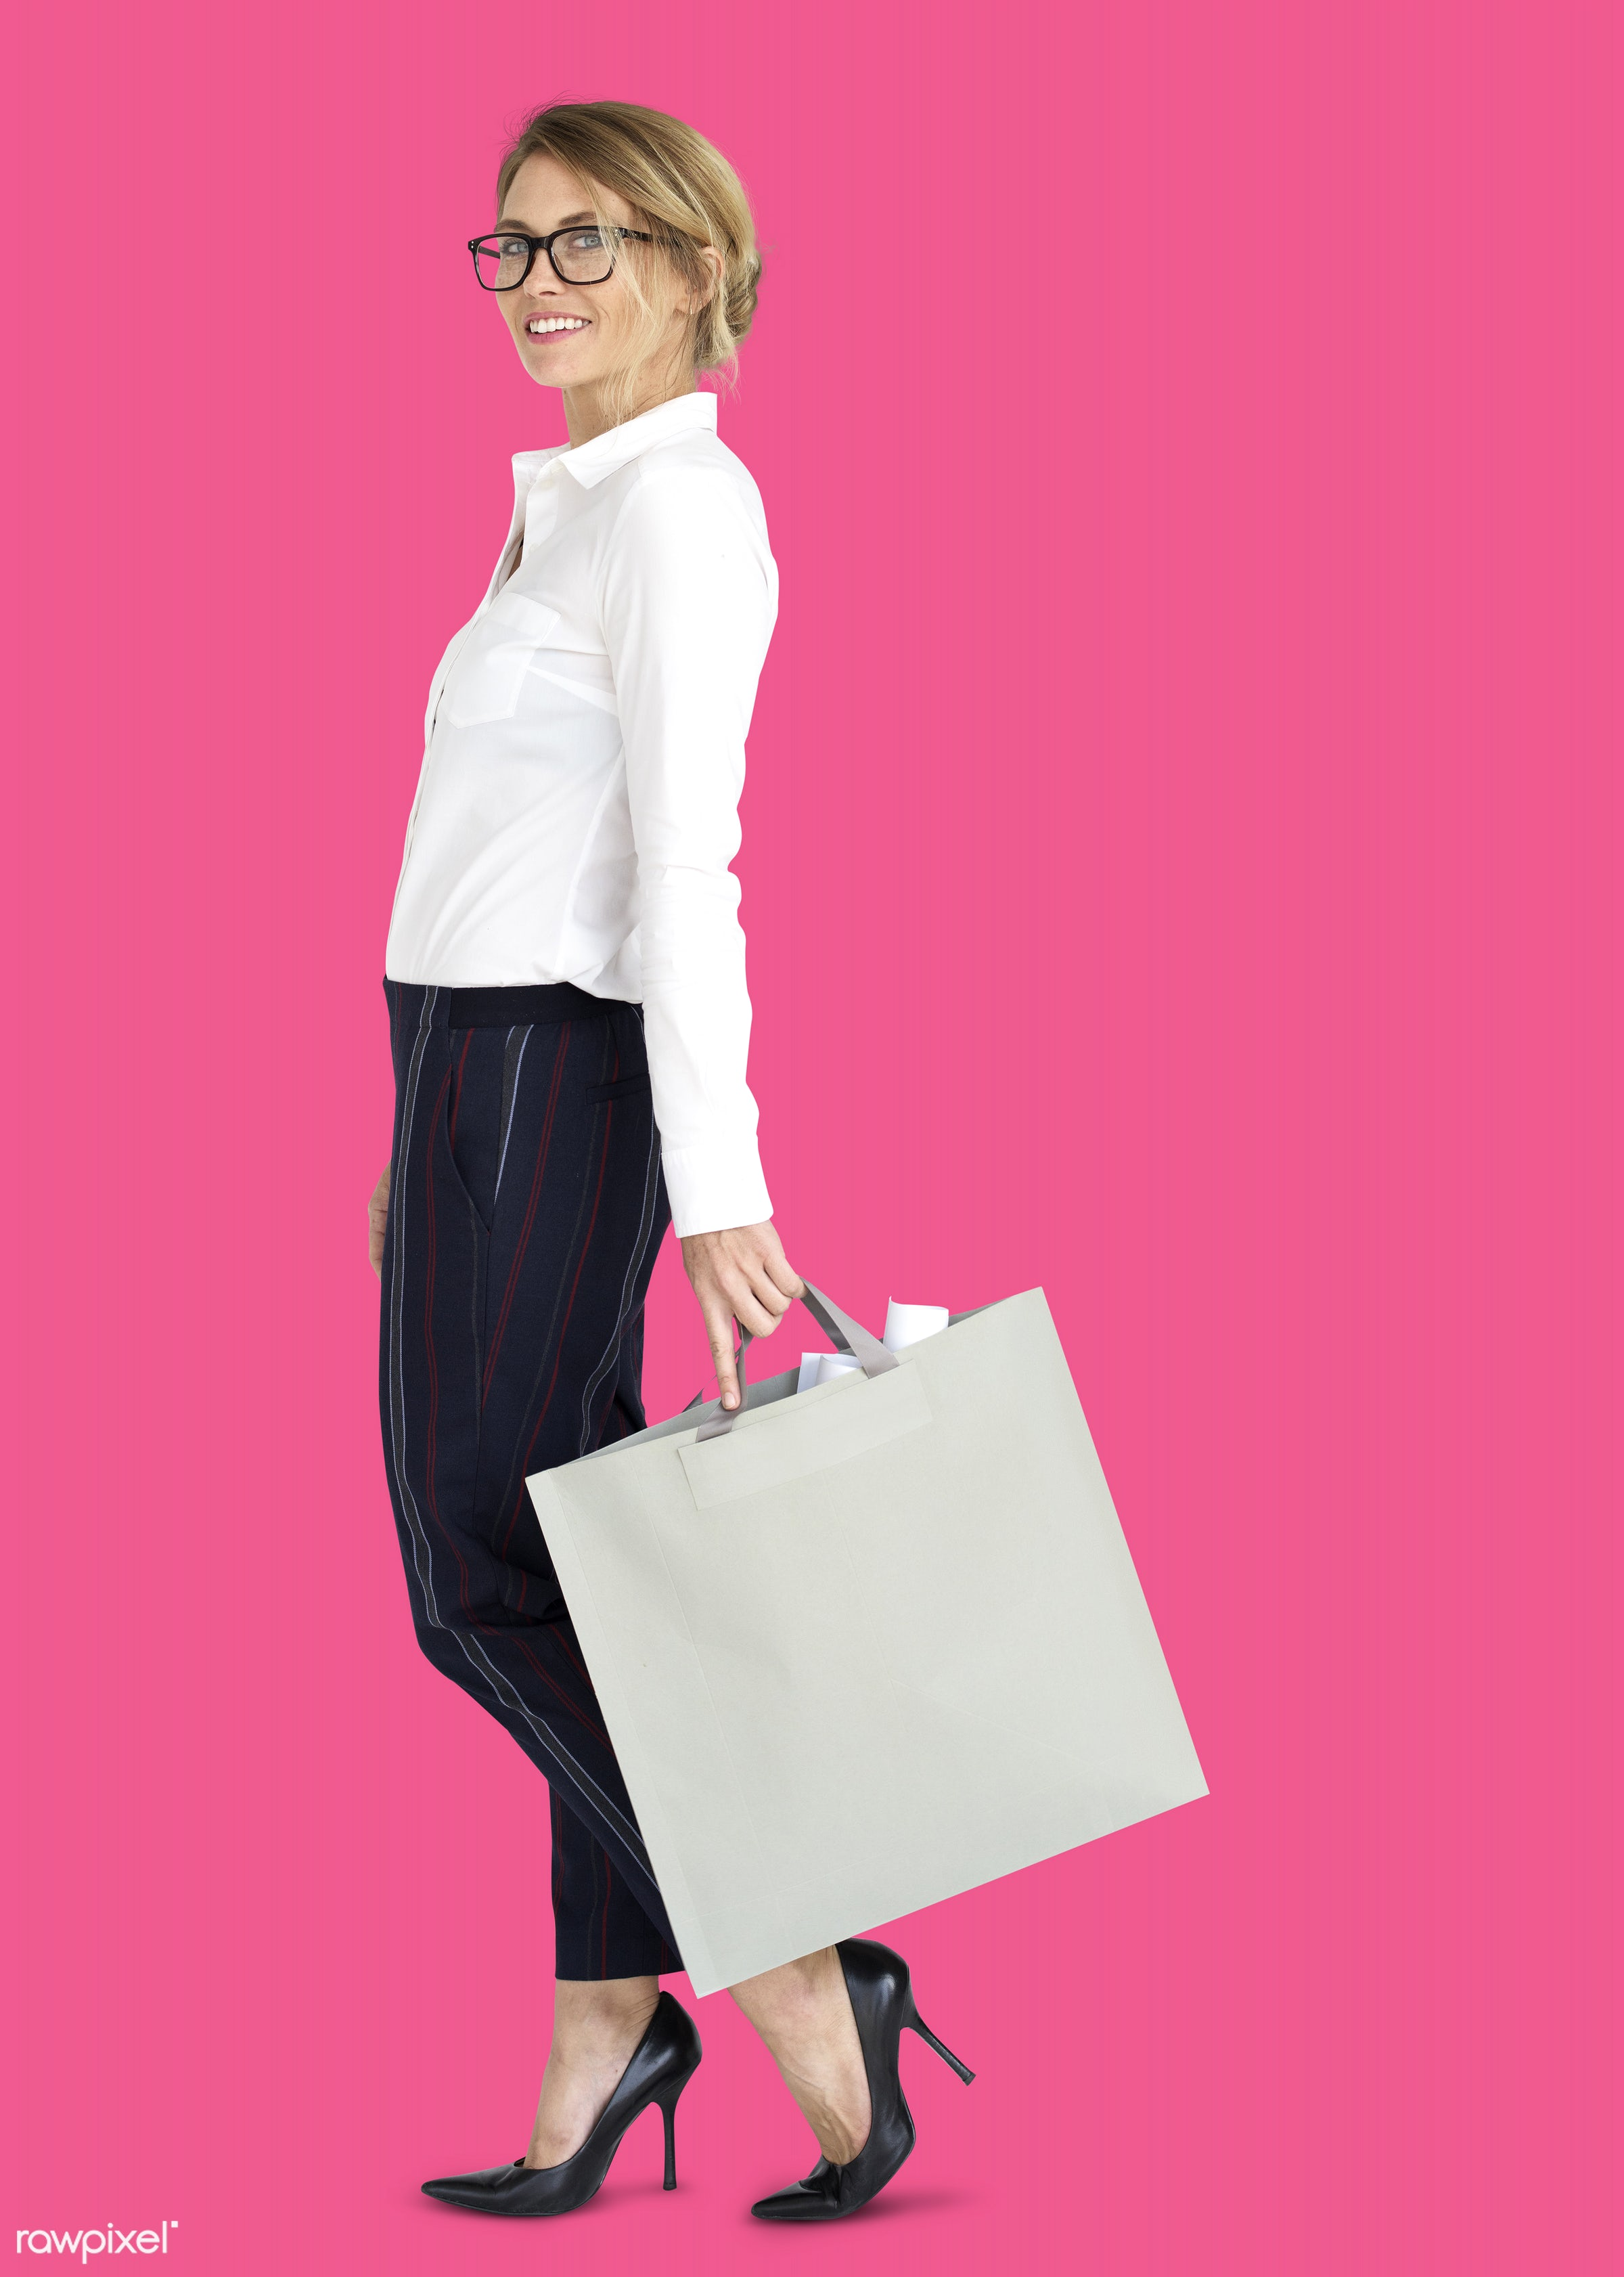 studio, expression, person, people, woman, pink, smile, cheerful, smiling, isolated, bag, happiness, businesswoman, portrait...